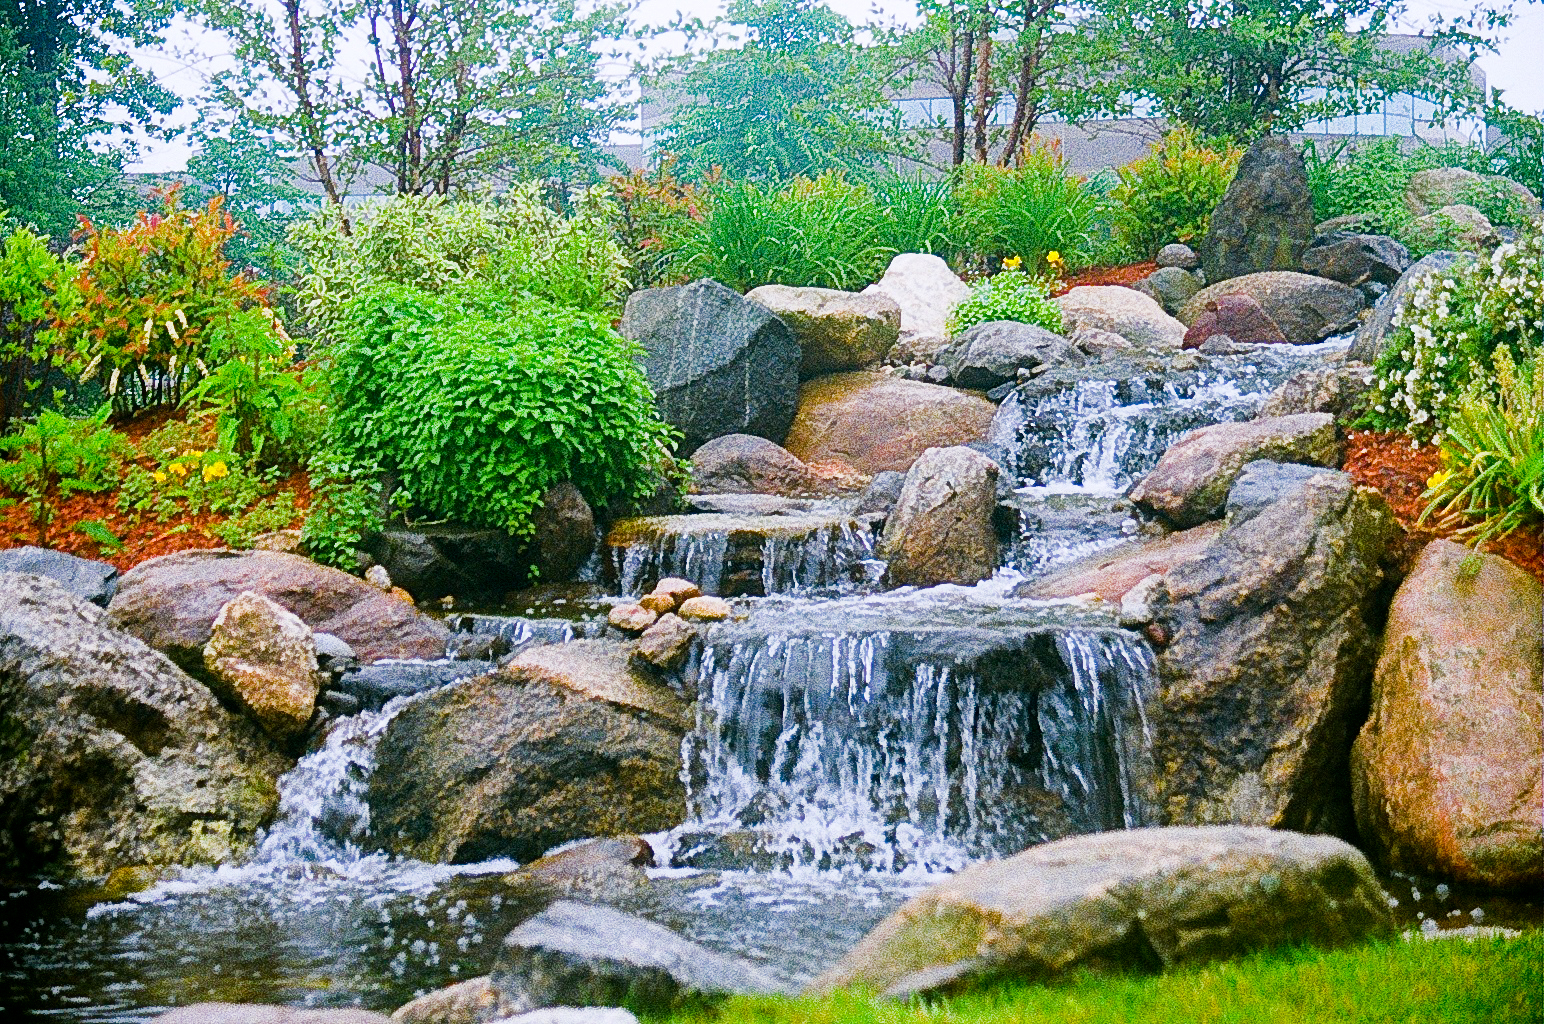 Garden water features services in brisbane queensland au for Garden designs images pictures